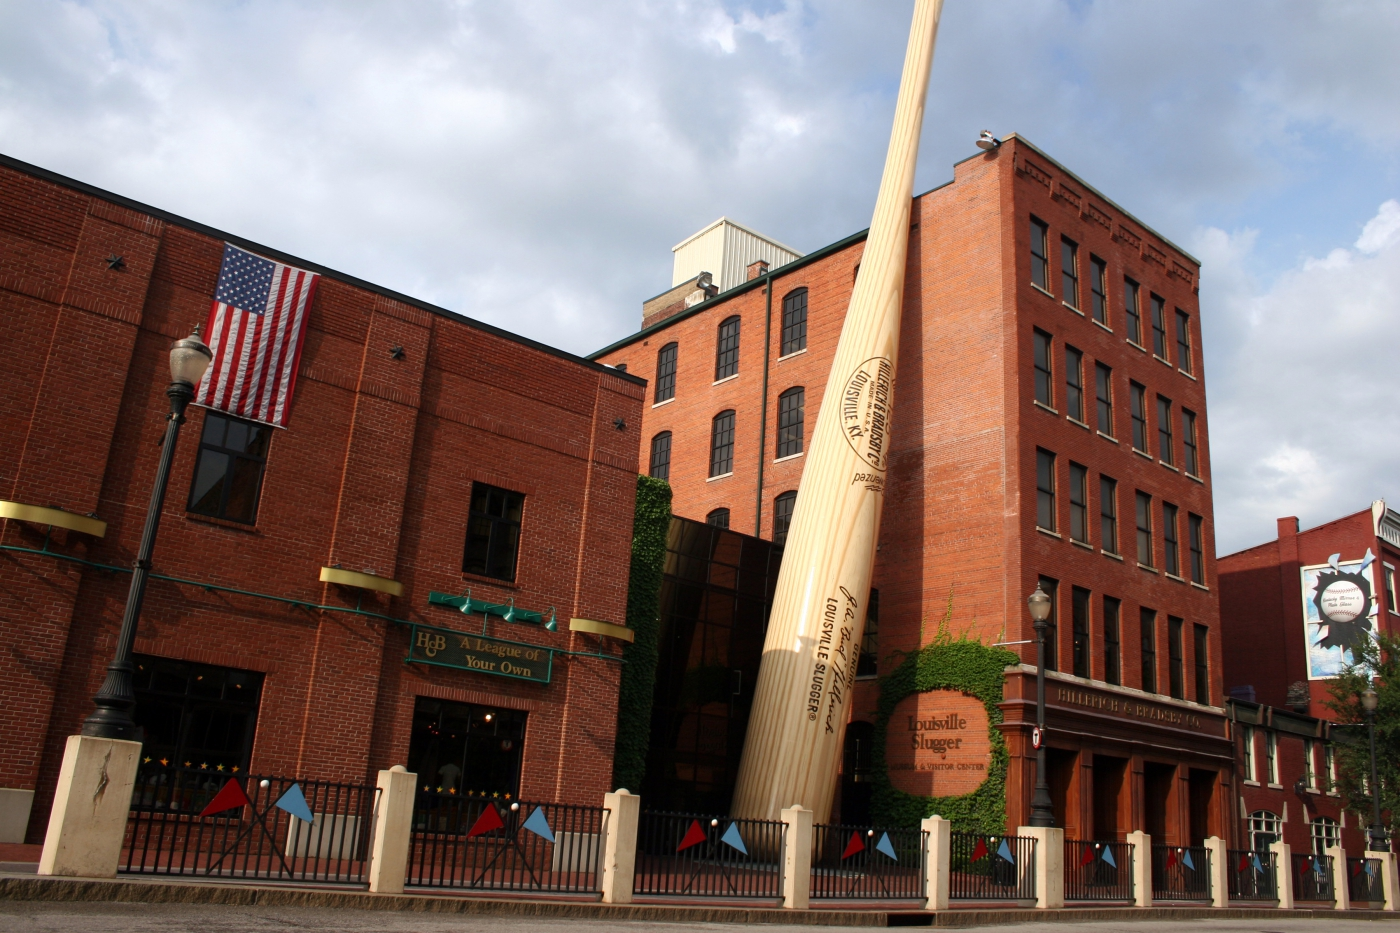 Louisville Slugger Bat Factory & Museum - Louisville, Kentucky